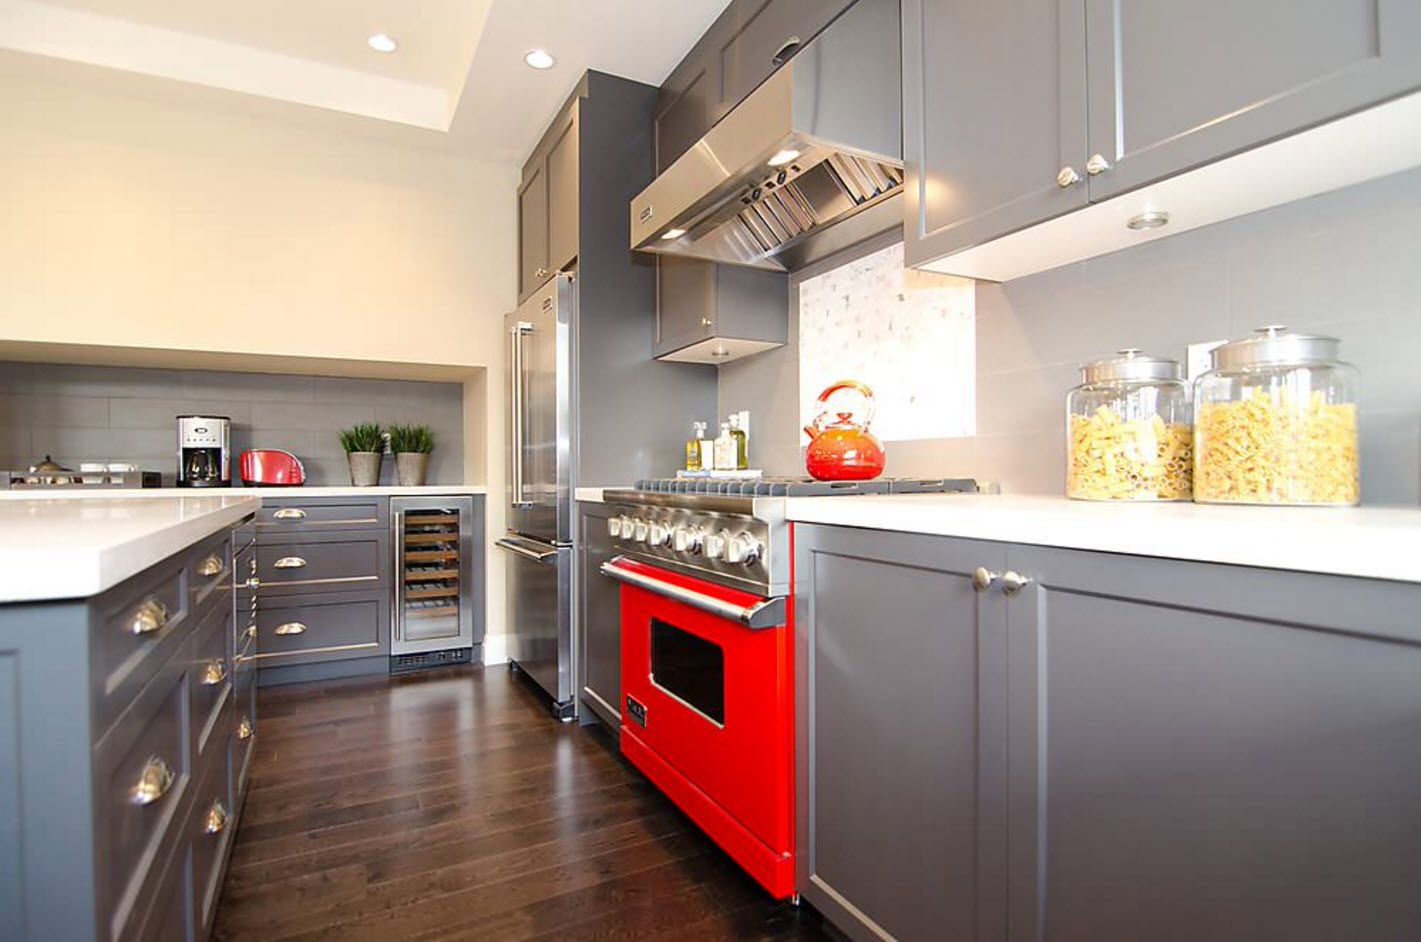 Bright household appliances in a gray kitchen